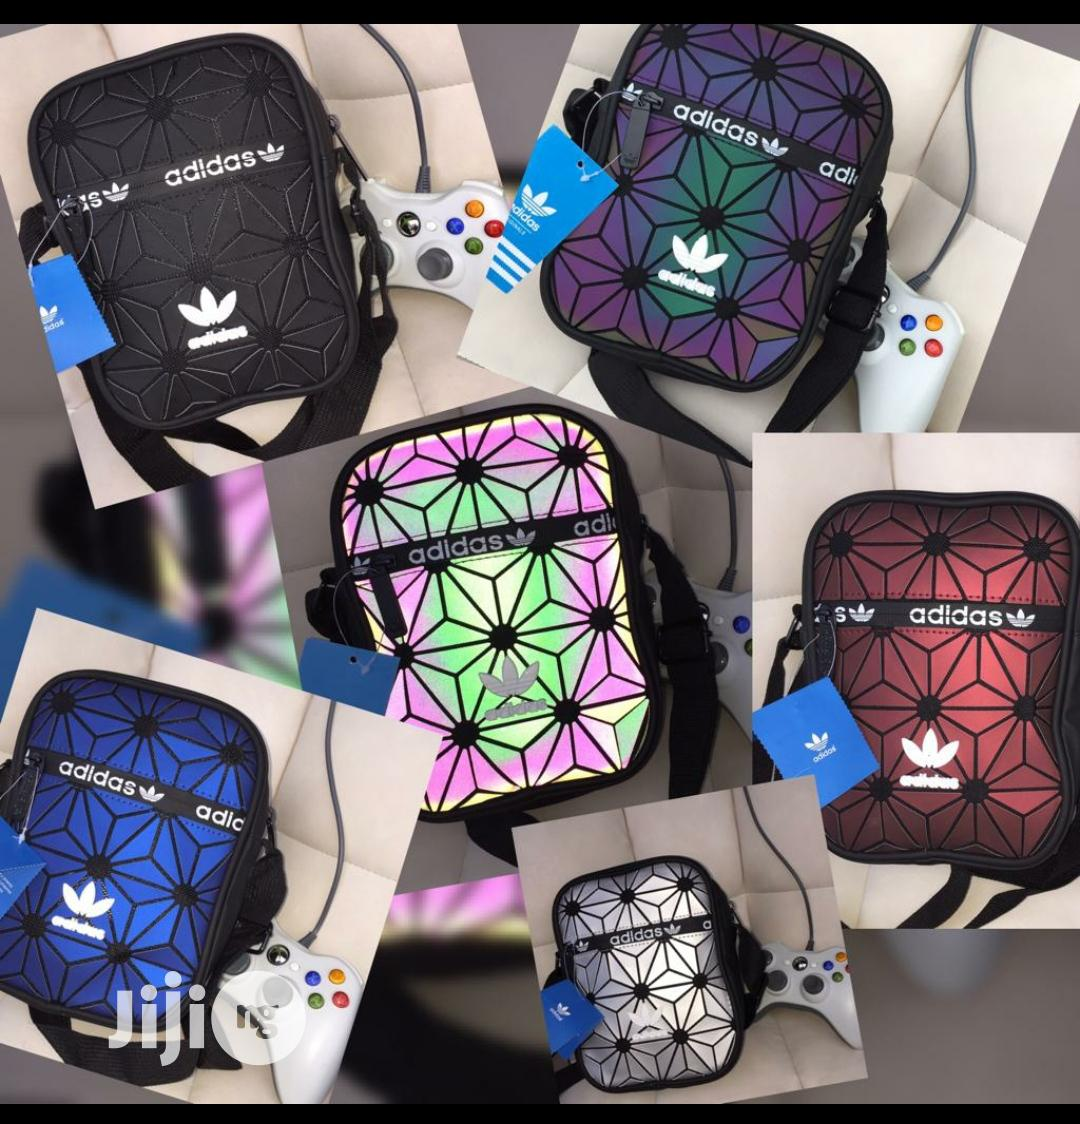 Adidas Front Bag Also for Laptop